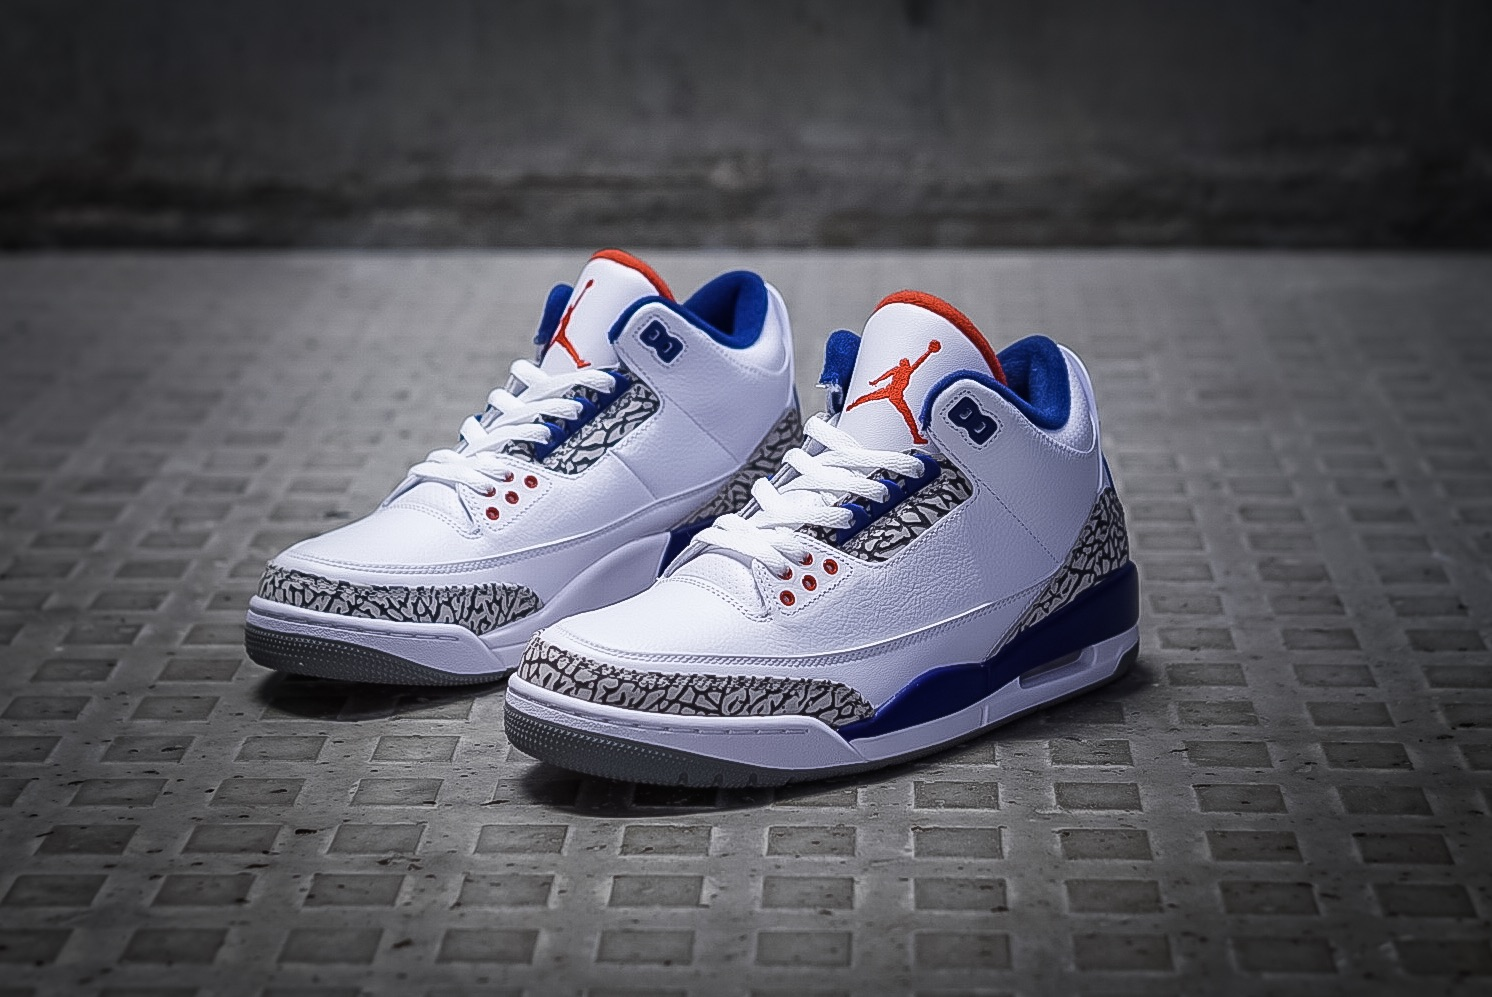 fcd34637832 air jordan 3 Archives - Air 23 - Air Jordan Release Dates ...